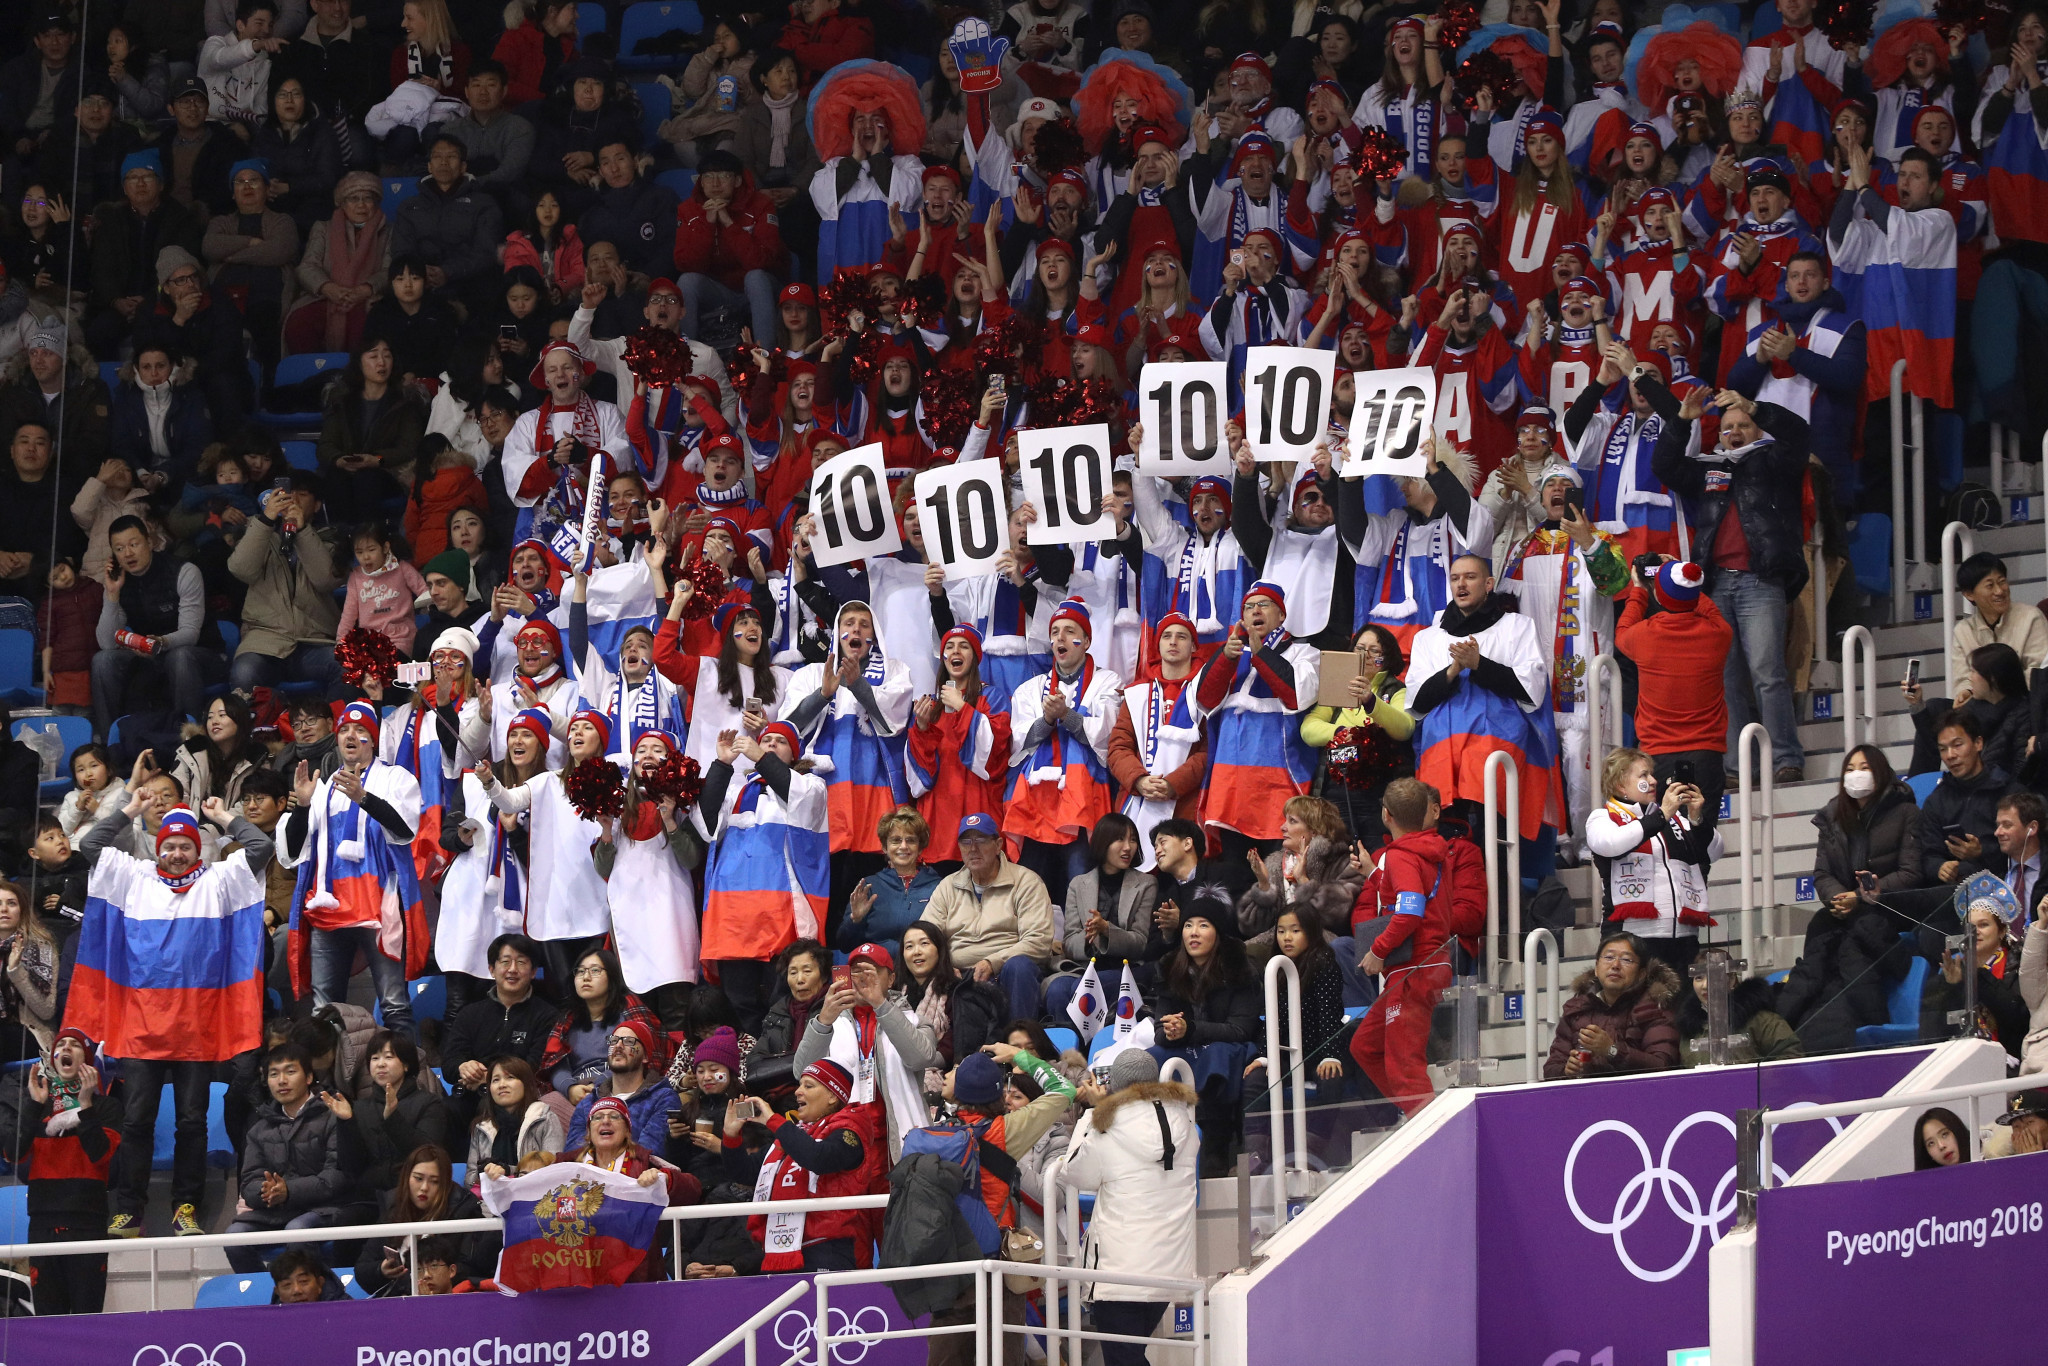 Russian supporters pictured during the figure skating competition today ©Getty Images